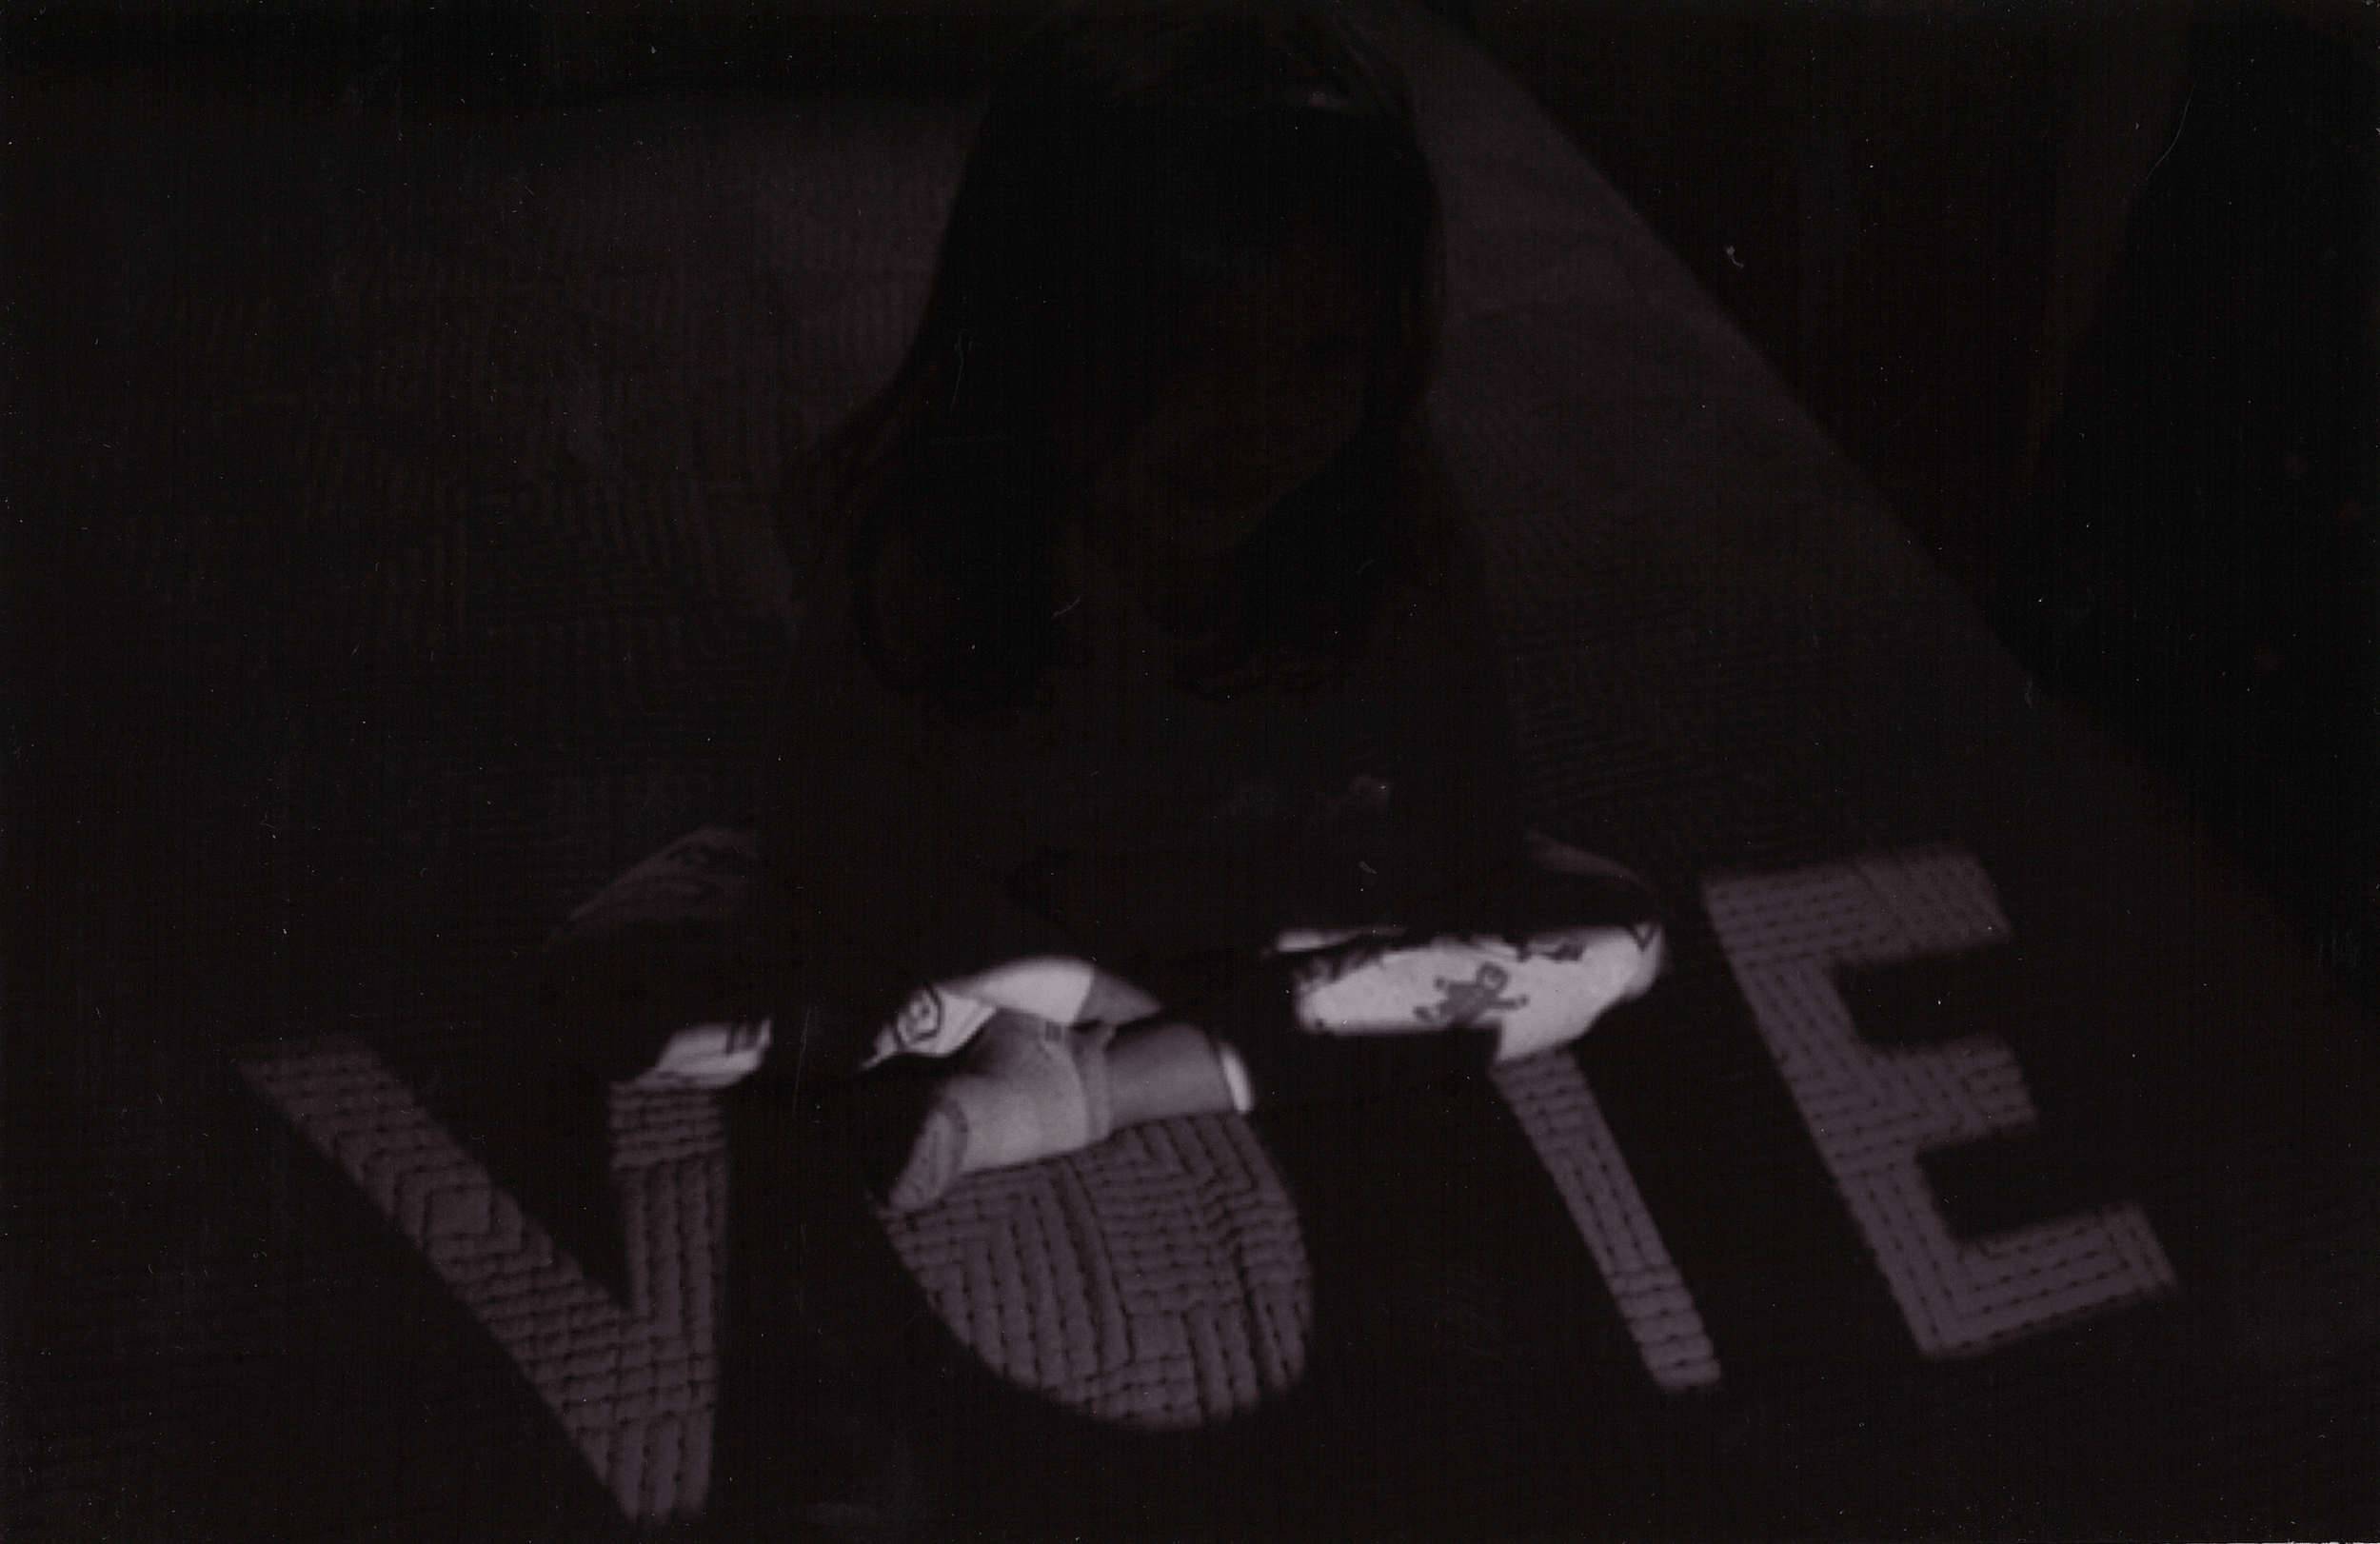 A girl sits in shadow with the word vote illuminated in front of her